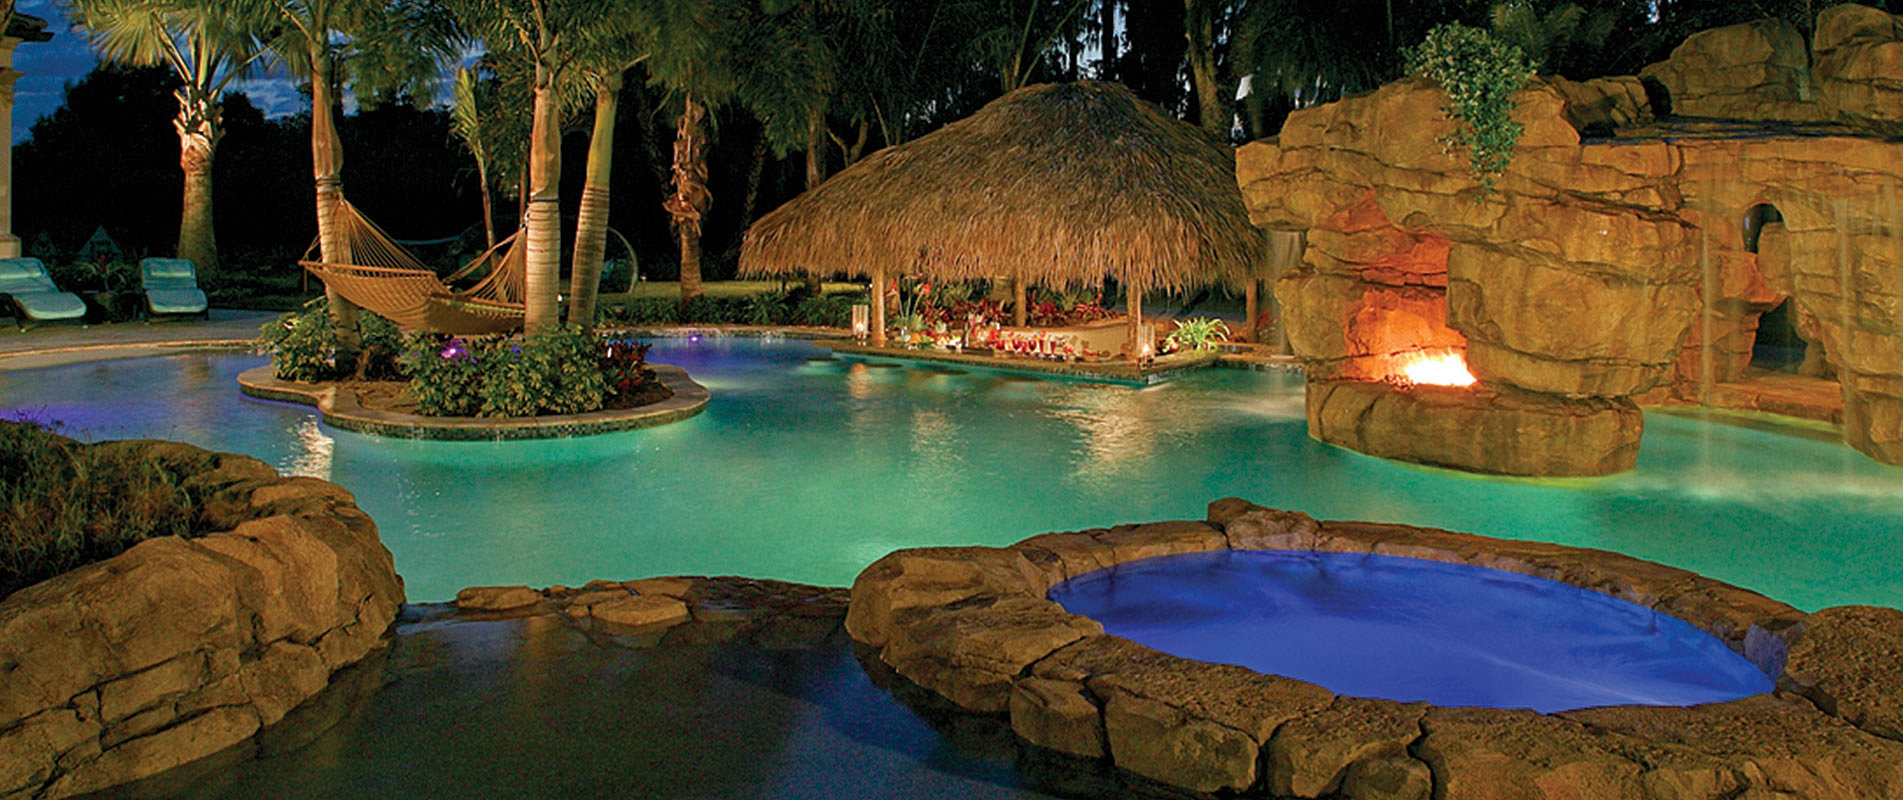 Custom luxury pools in central florida by southern pool for Custom swimming pool designs